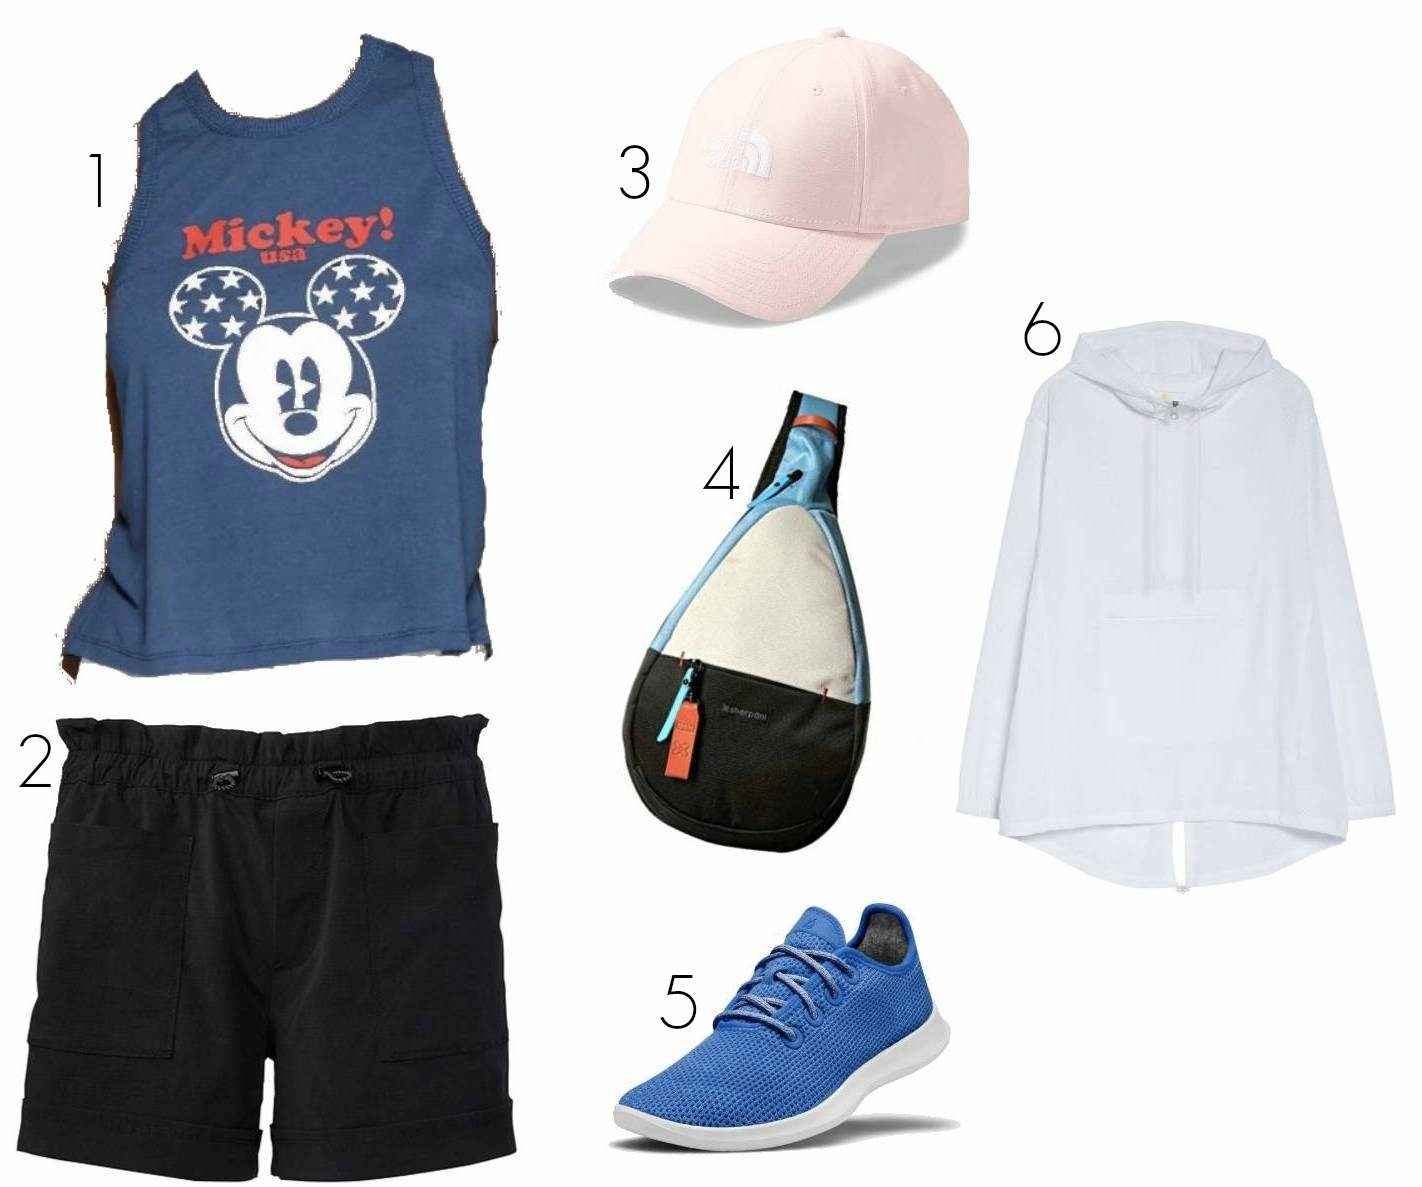 the Motherchic outfit for Disney